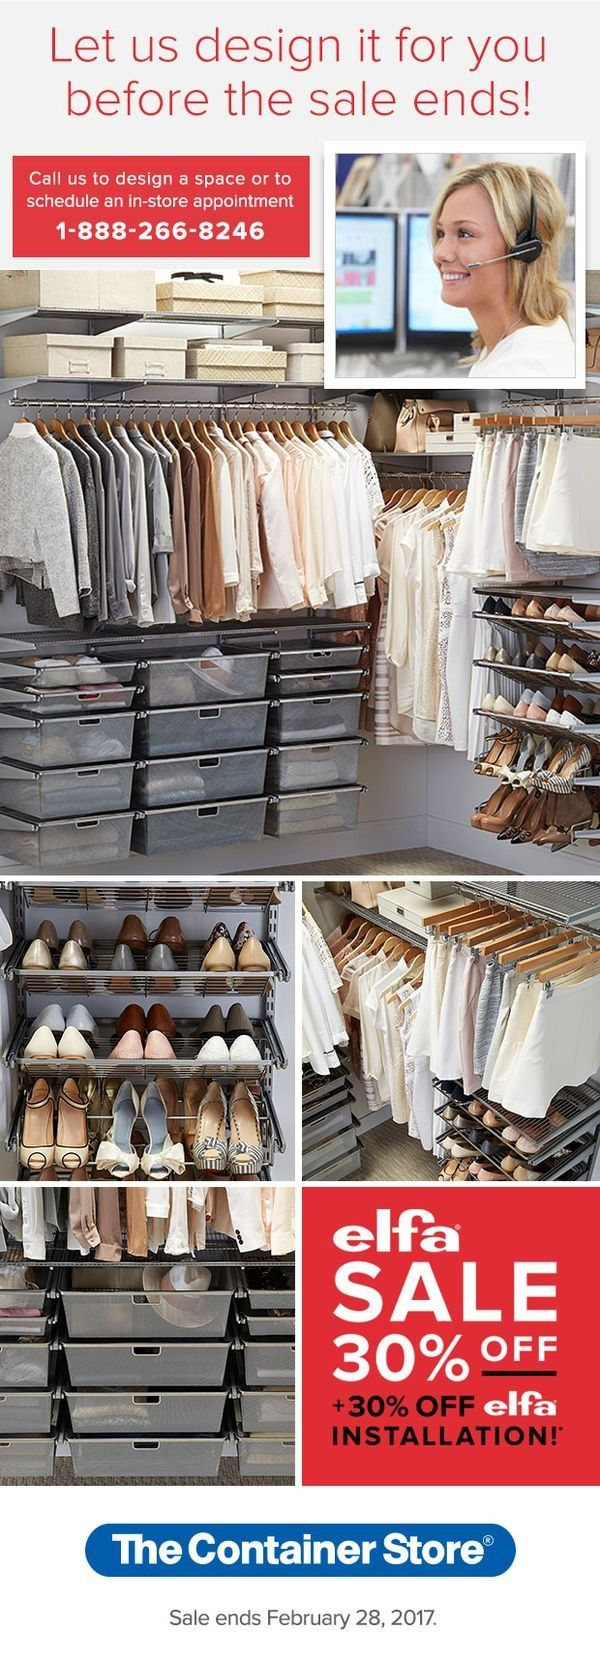 From The Container Store · Let Us Design Your New Closet For FREE! Call Or  Stop In And Let Our